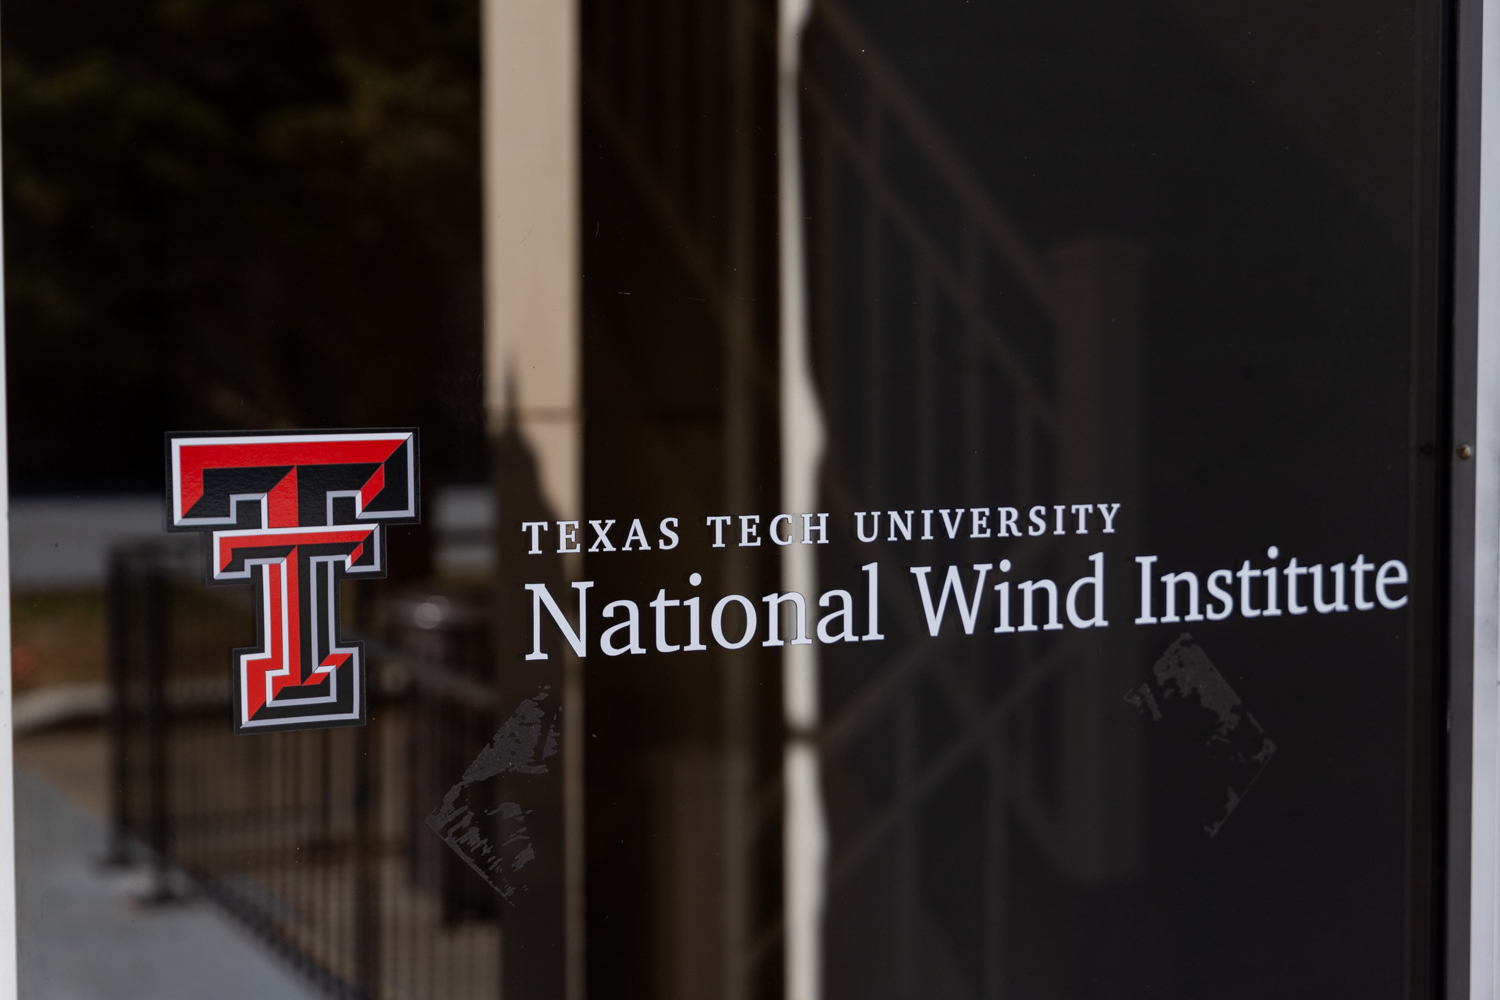 The National Wind Institute located at Texas Tech University. (Codi Clark/Texas Tech University)